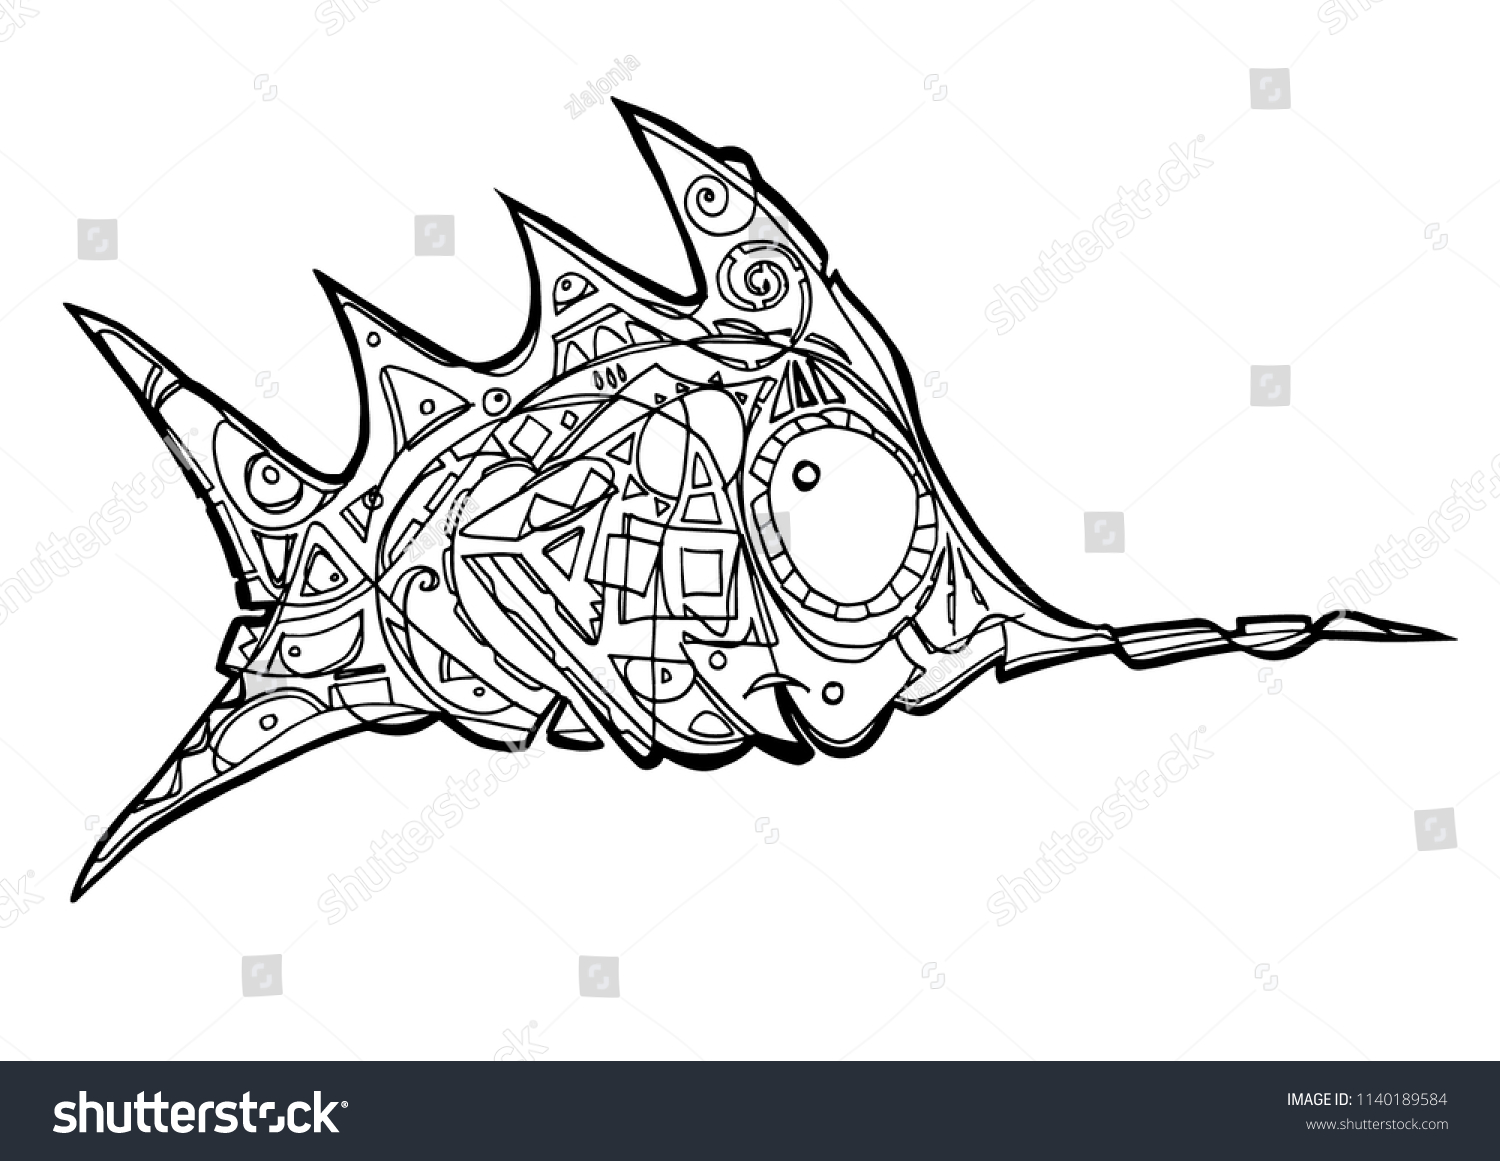 Swordfish Coloring Page Abstract Stock Vector (Royalty Free ...